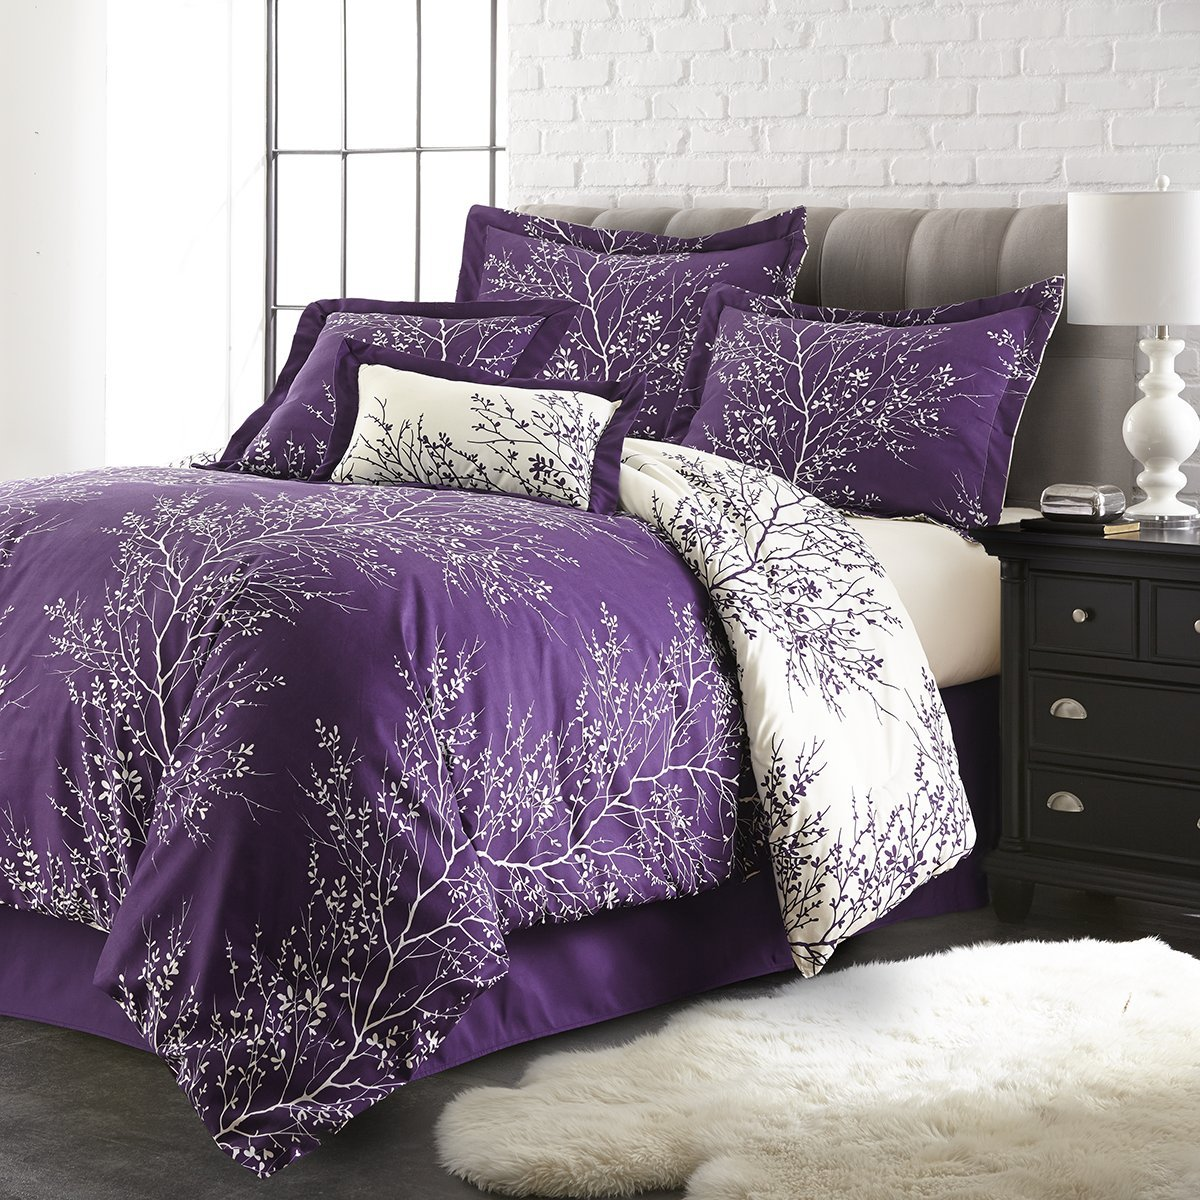 sheets uncategorized queen bedroom sets comforter size bedding of and large fascinating bed purple white decor in